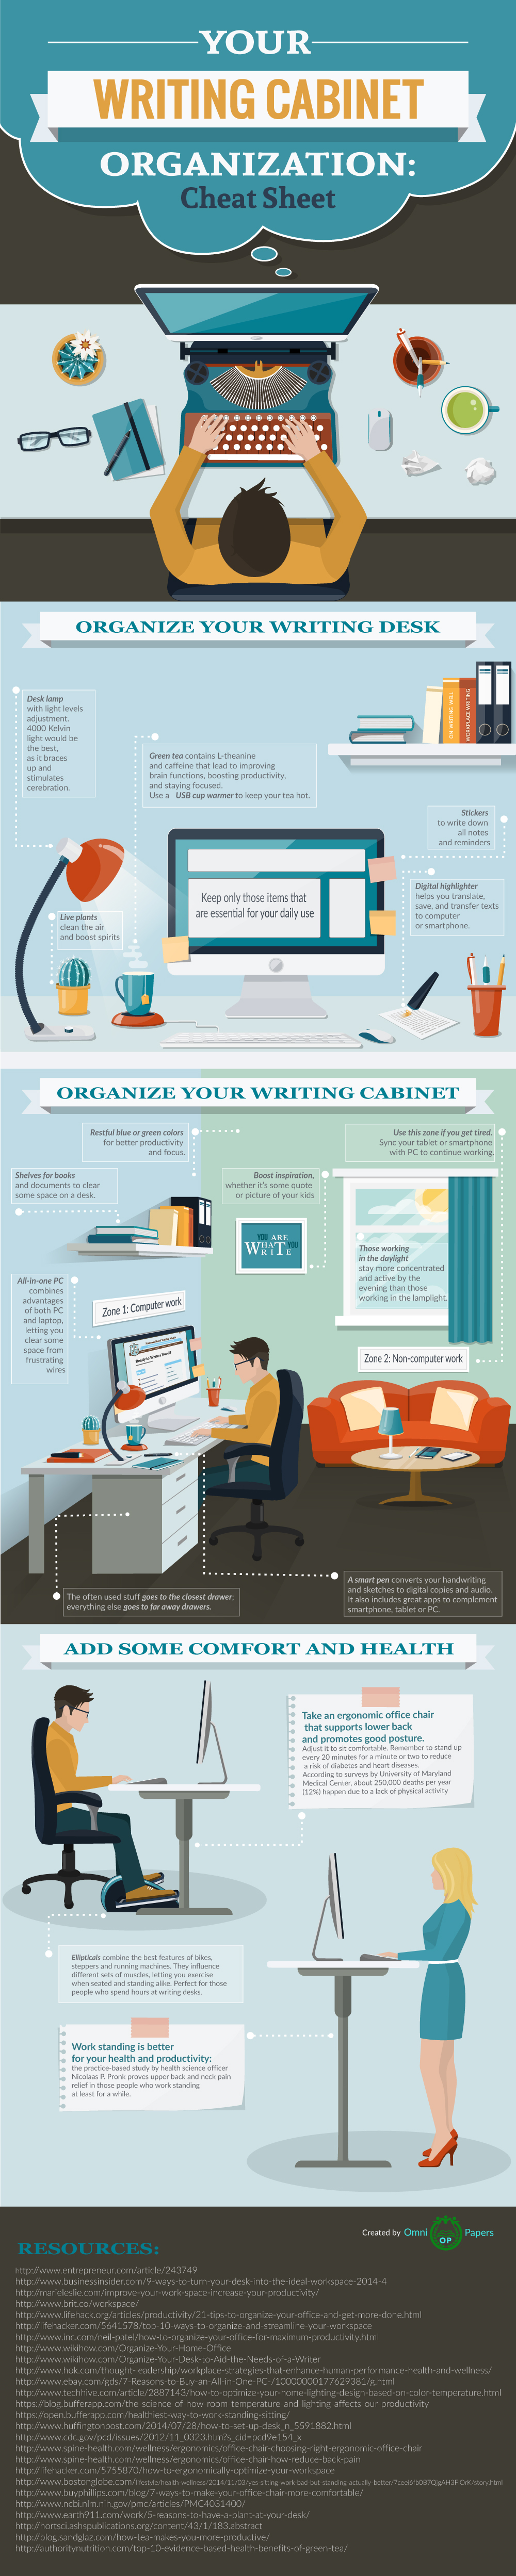 your-writing-cabinet-organization